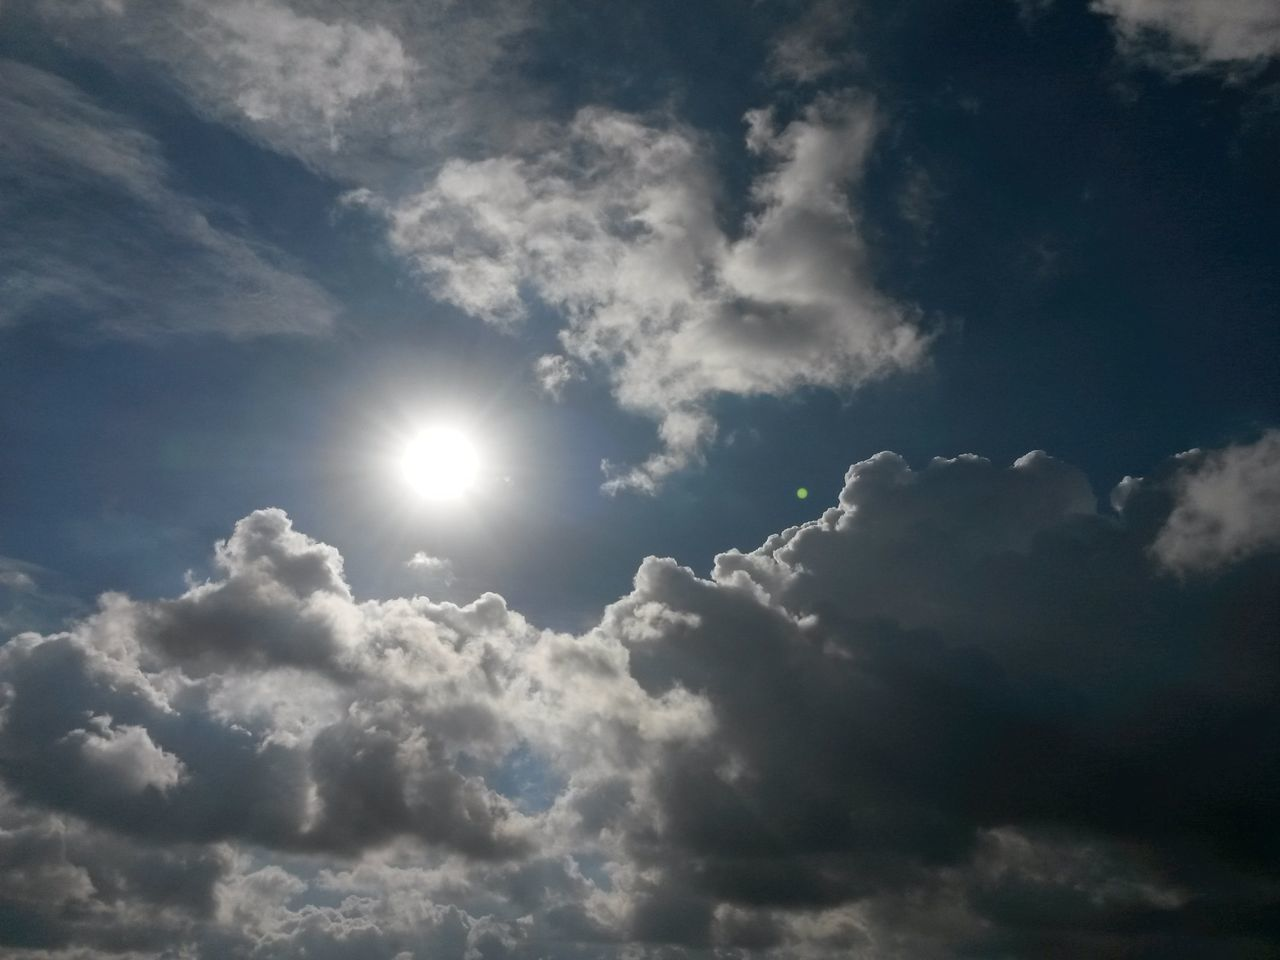 beauty in nature, nature, sun, sunbeam, sky, cloud - sky, tranquility, low angle view, scenics, sunlight, outdoors, no people, sky only, tranquil scene, day